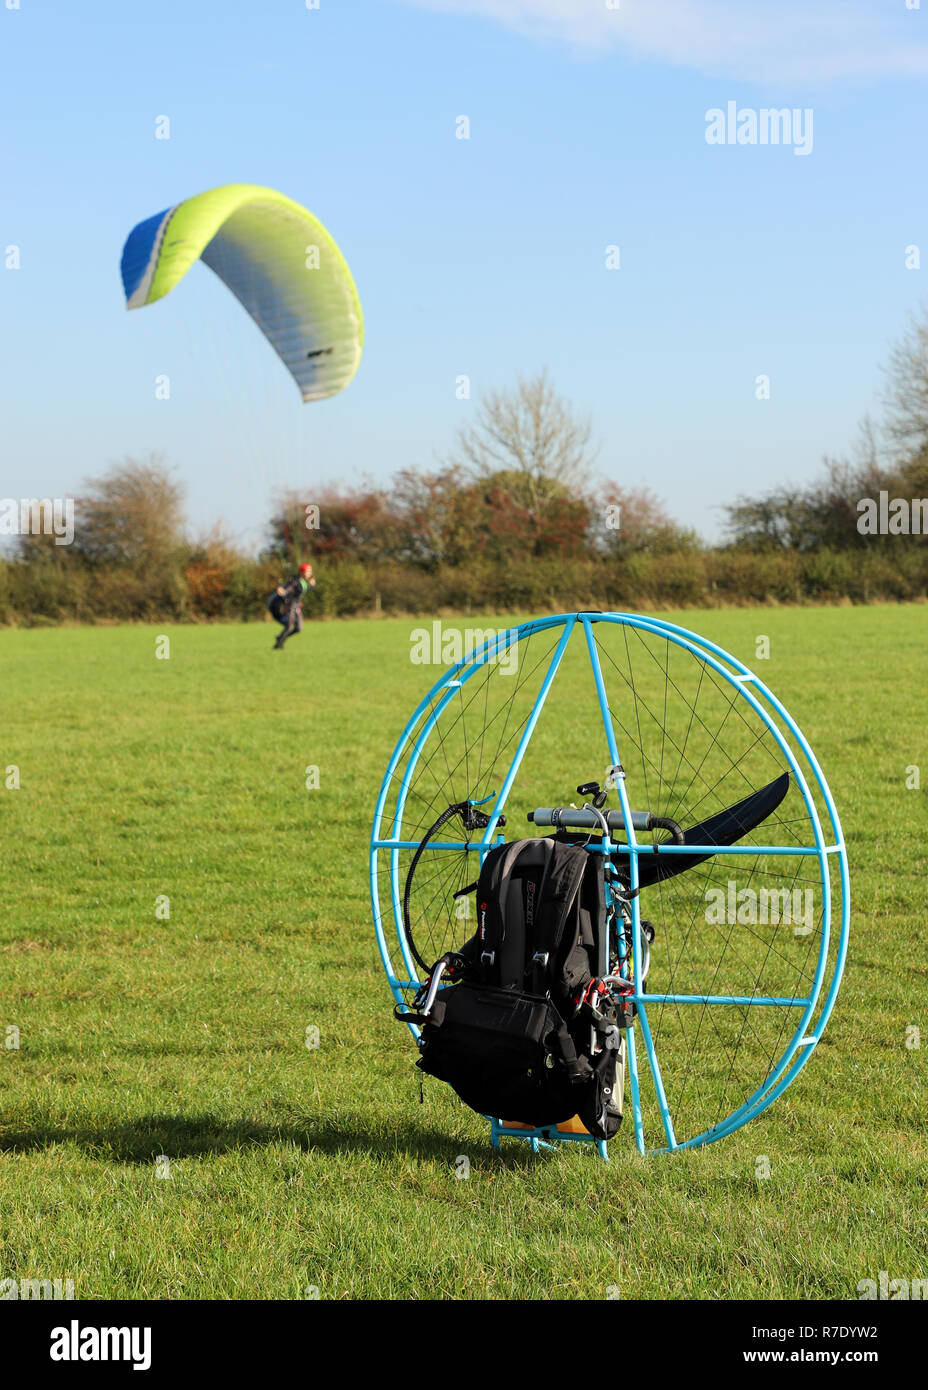 Paragliding Accident Stock Photos & Paragliding Accident Stock